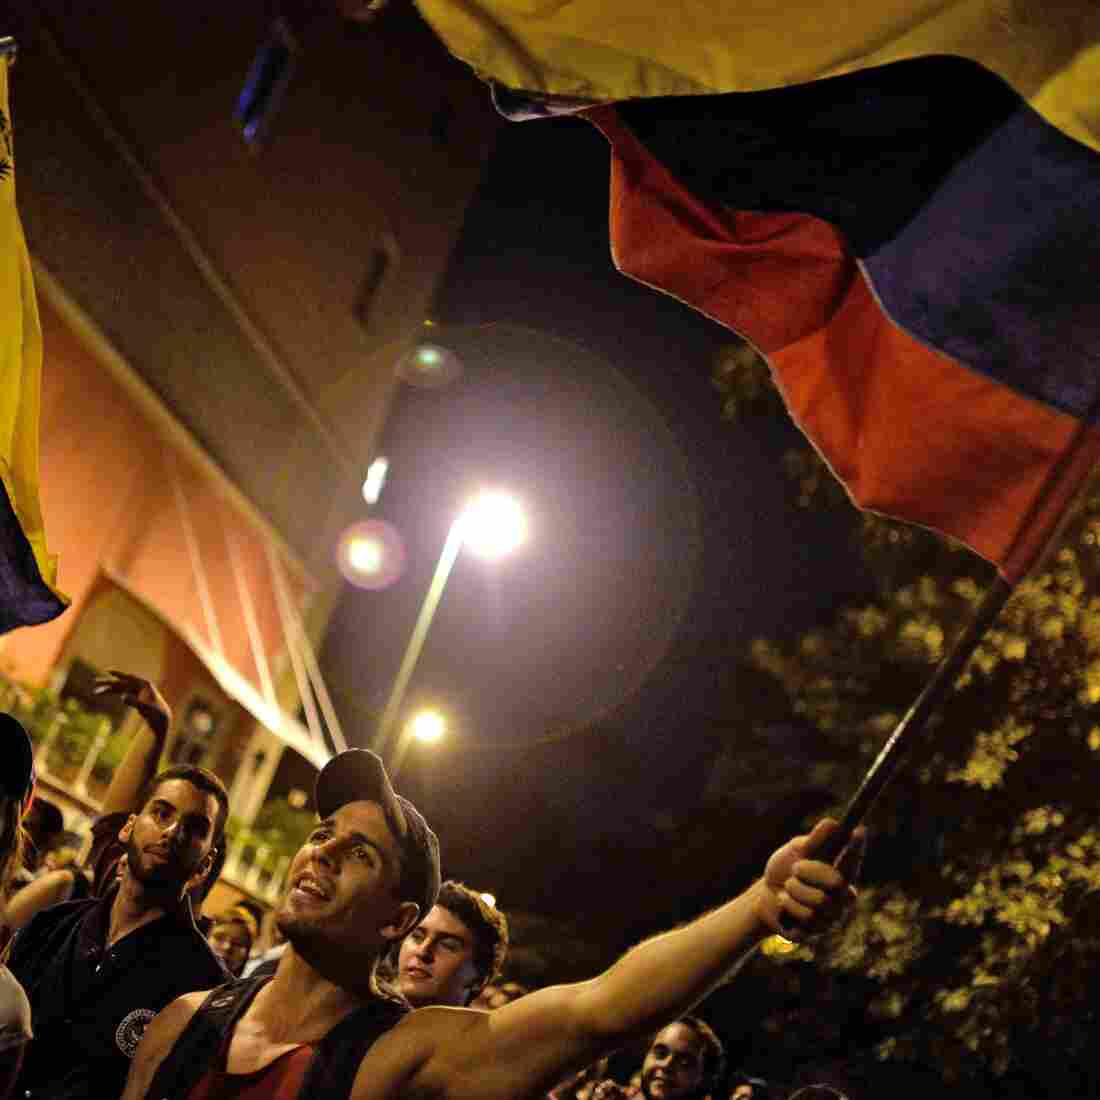 Opposition Party Wins Big In Venezuela, Ousting Maduro's Socialists